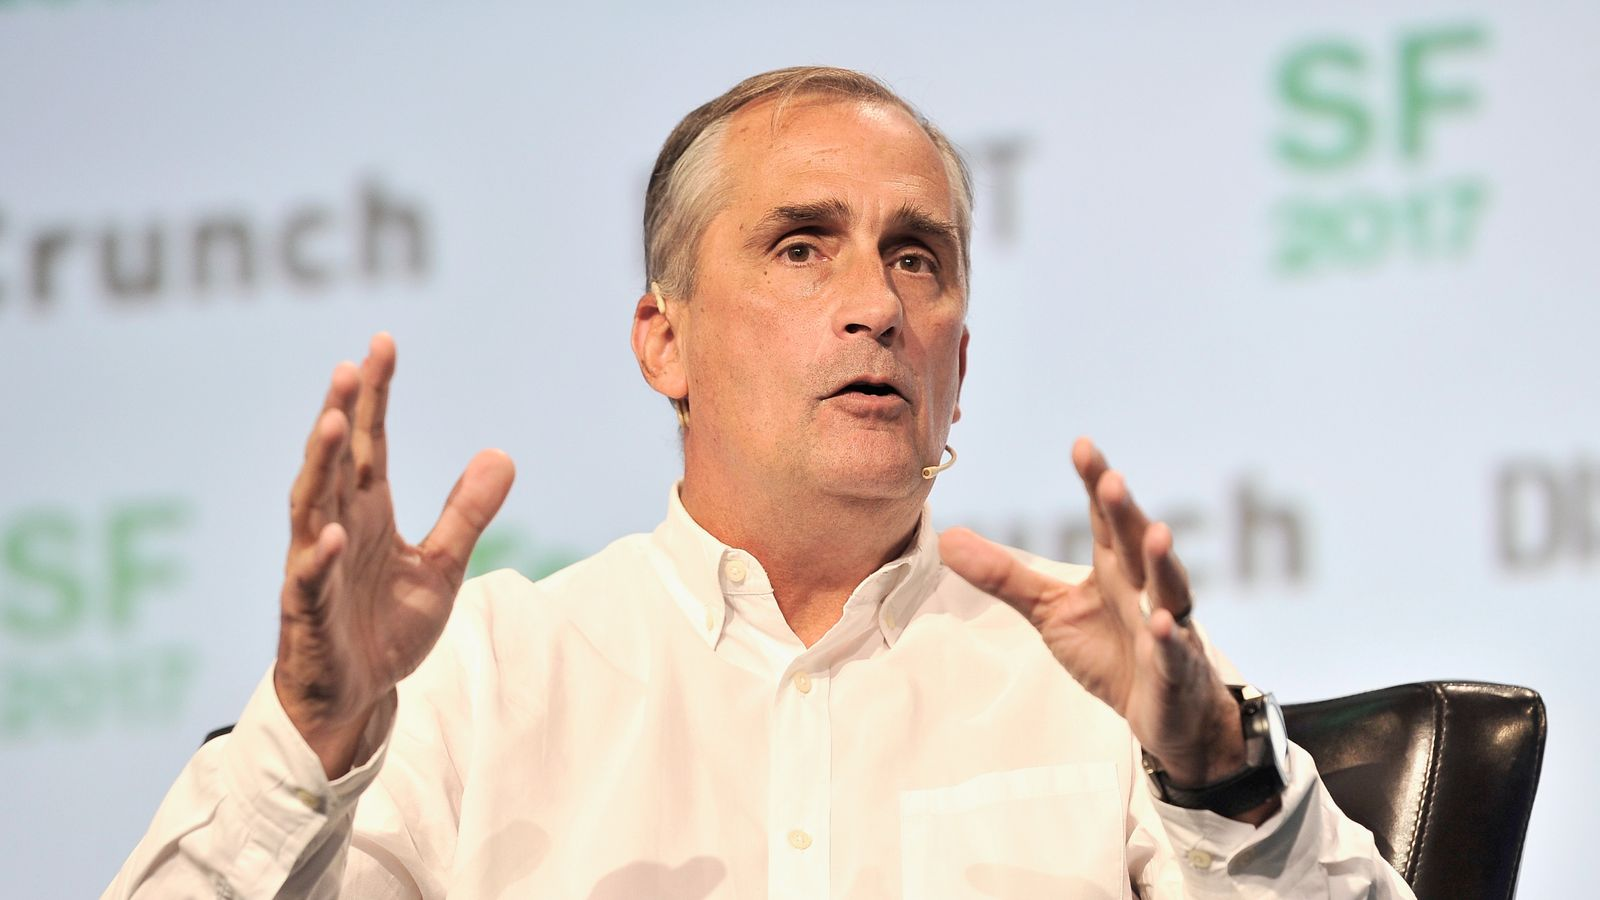 Intel boss sold stock before chip flaw disclosure